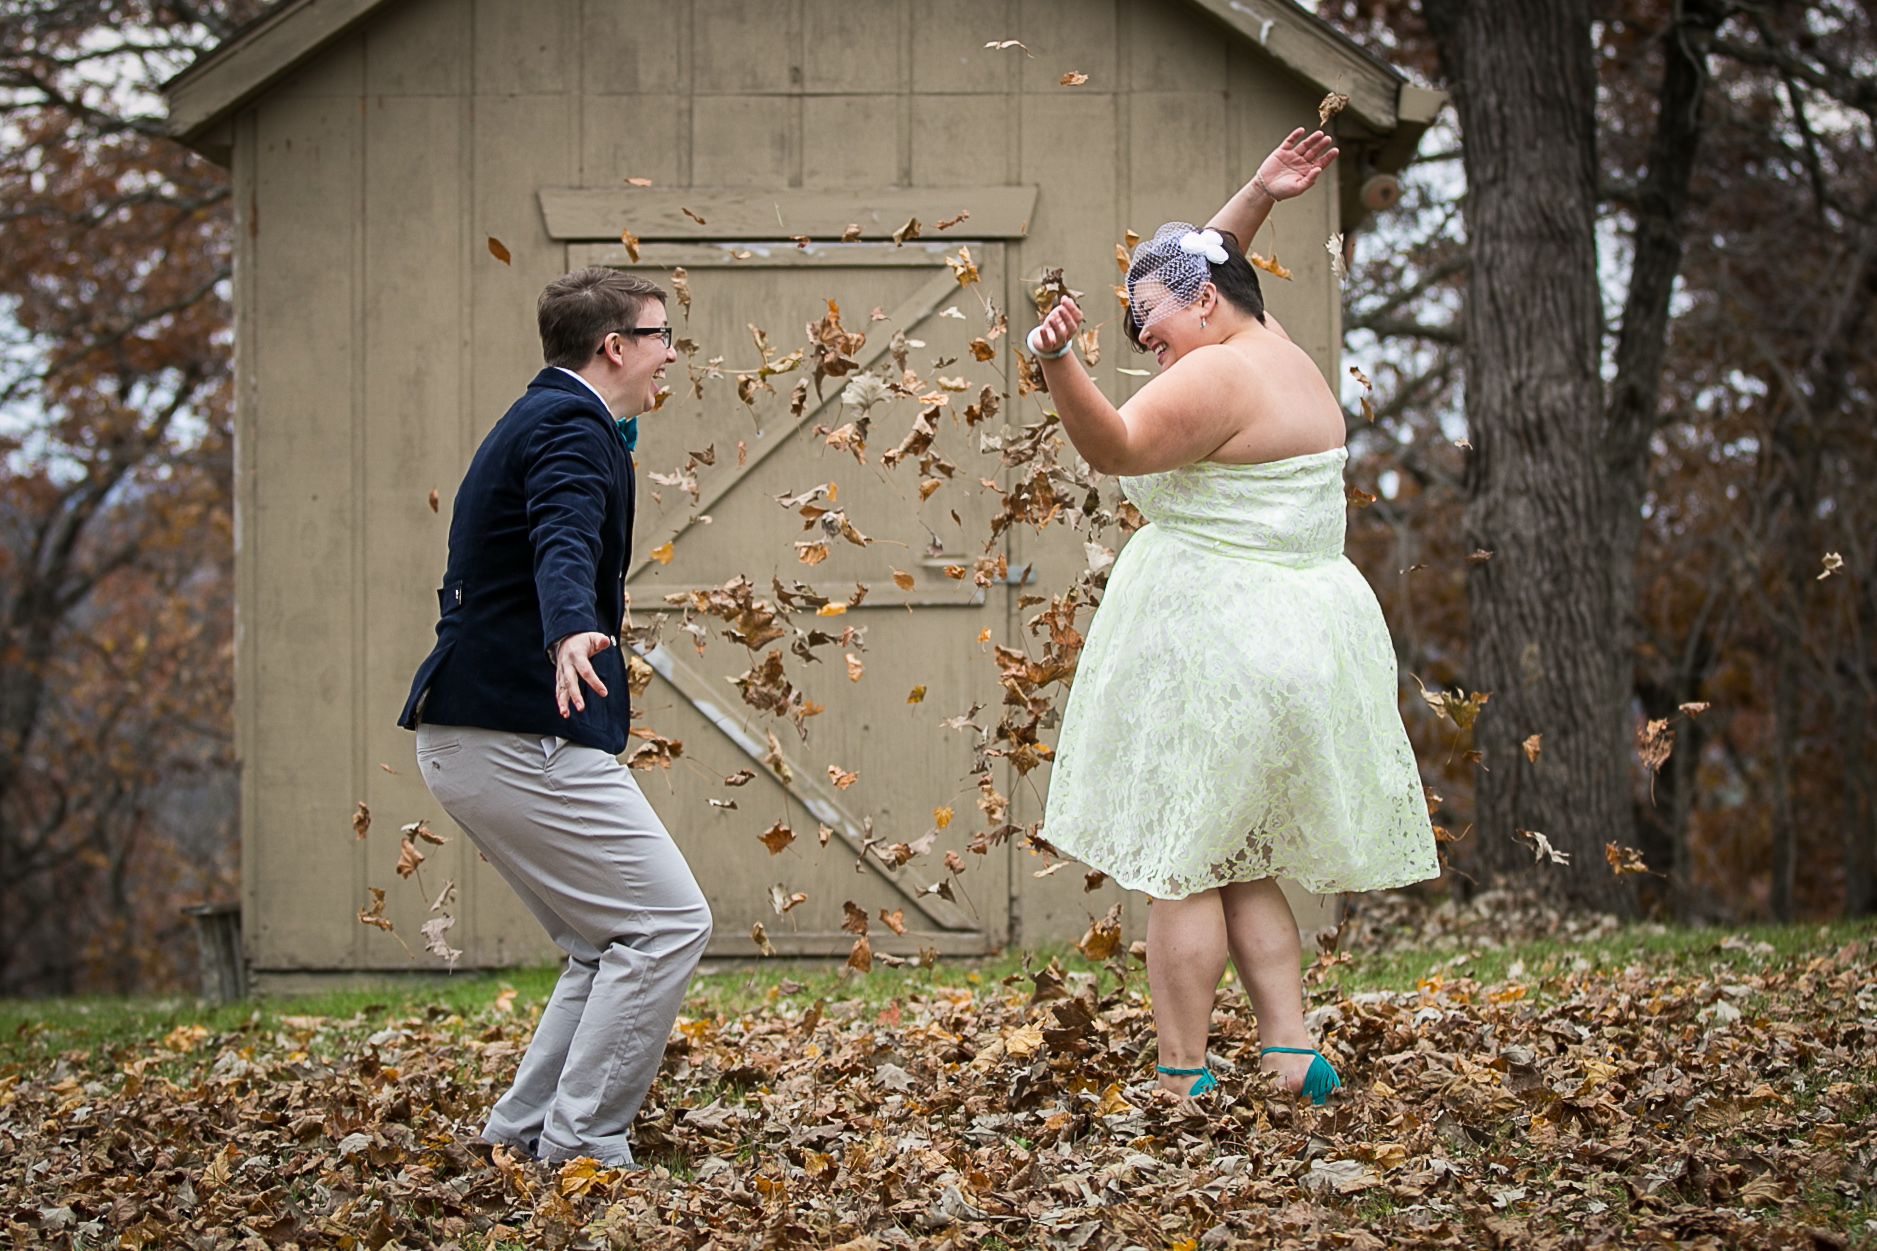 Goofing off on our wedding day